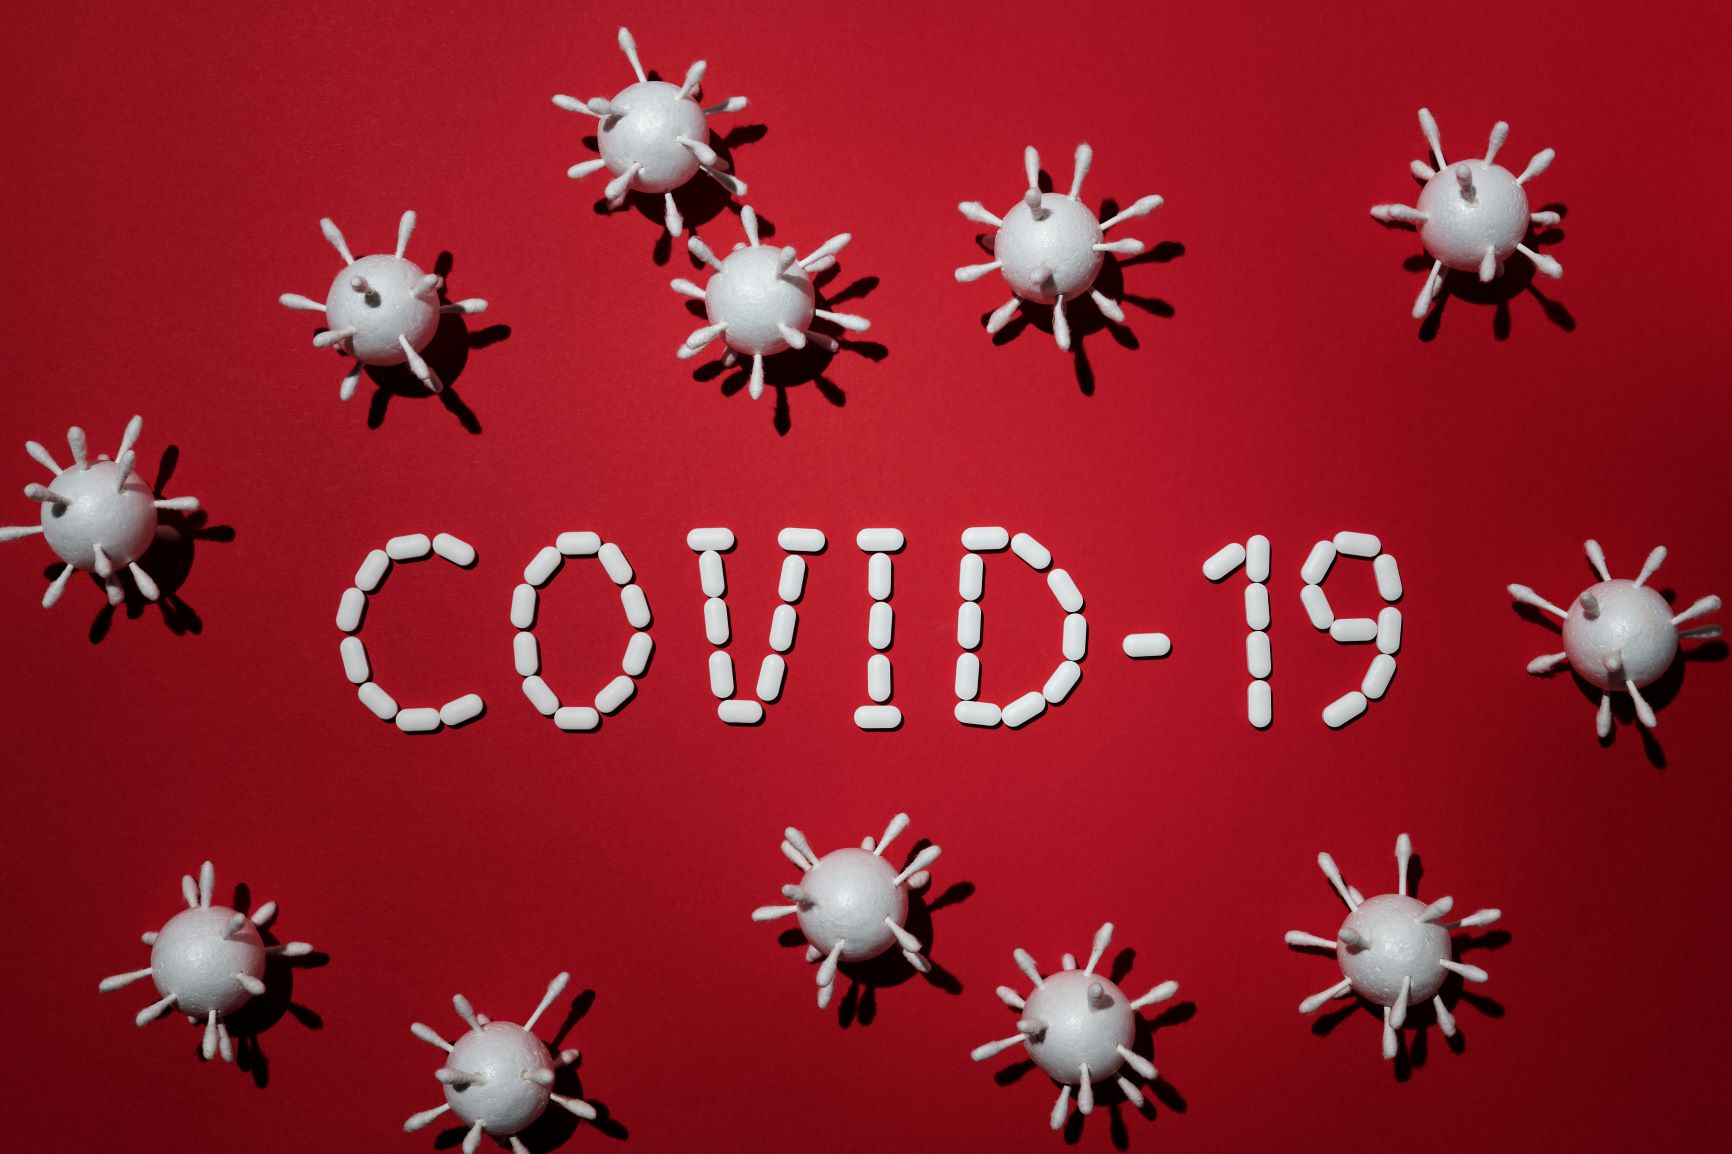 Canva - Concept Of Covid-19 In Red Background 2 Photo by Edward Jenner